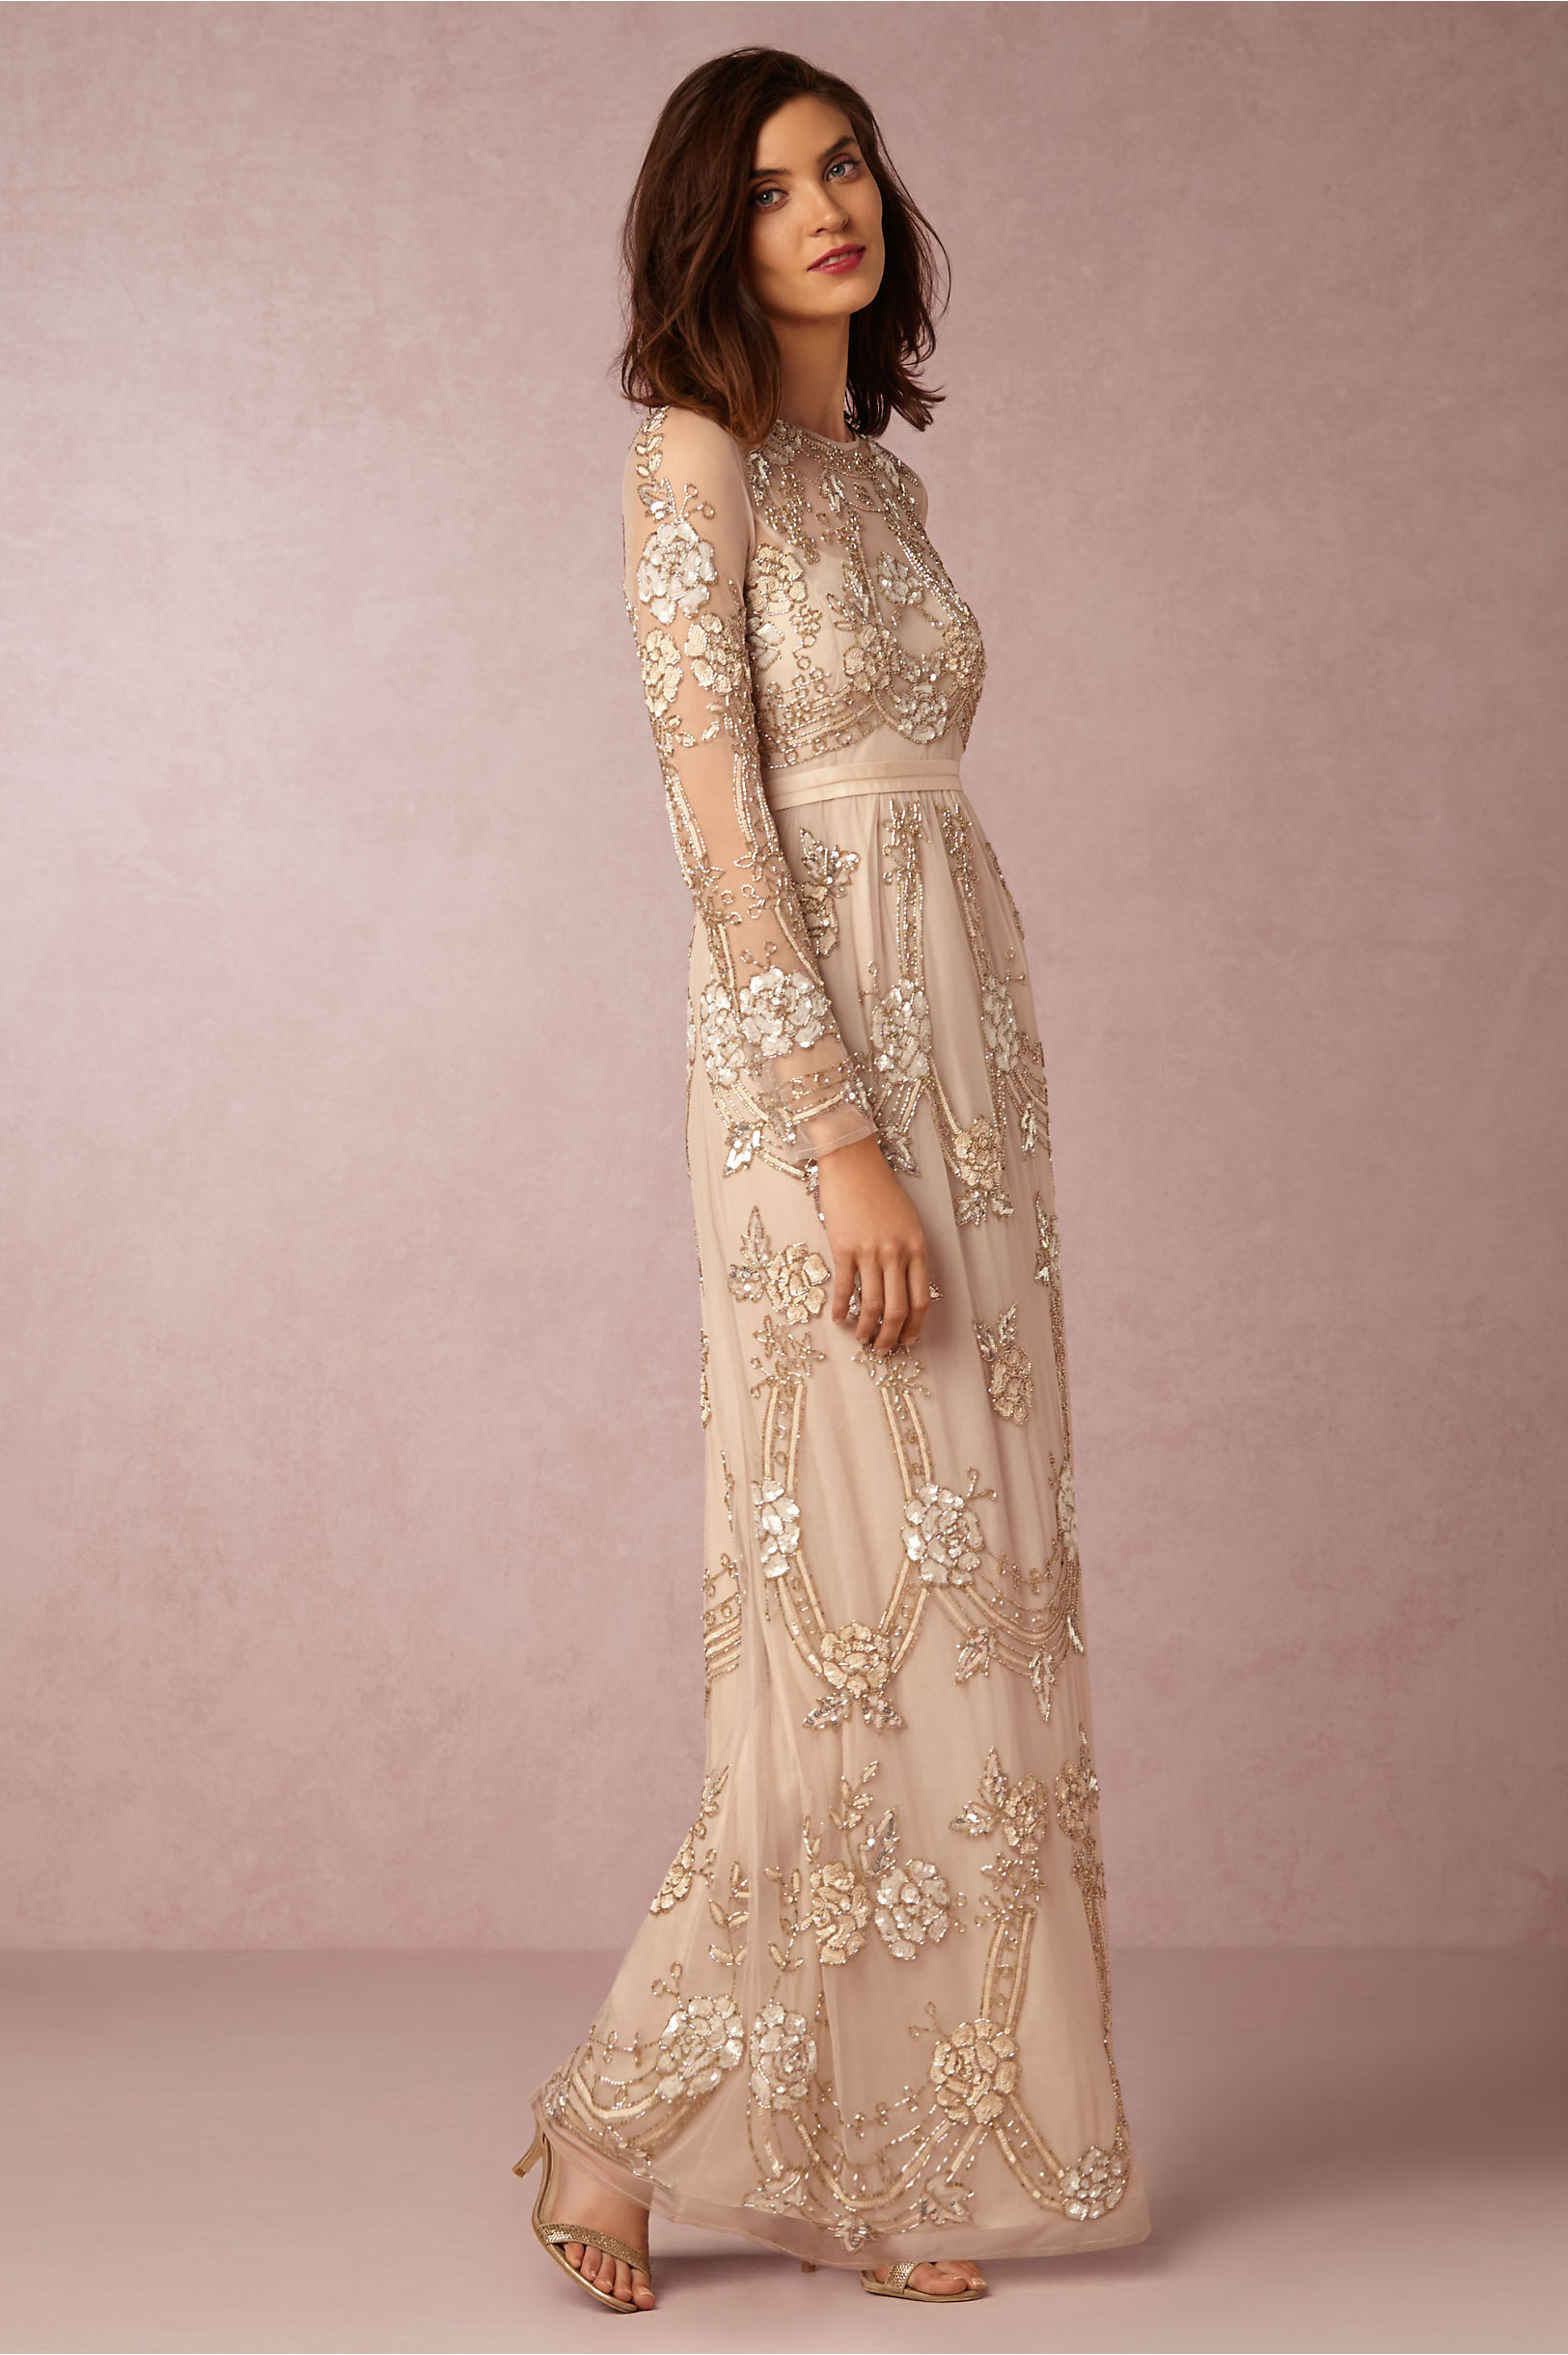 Adona Dress in Bride | BHLDN